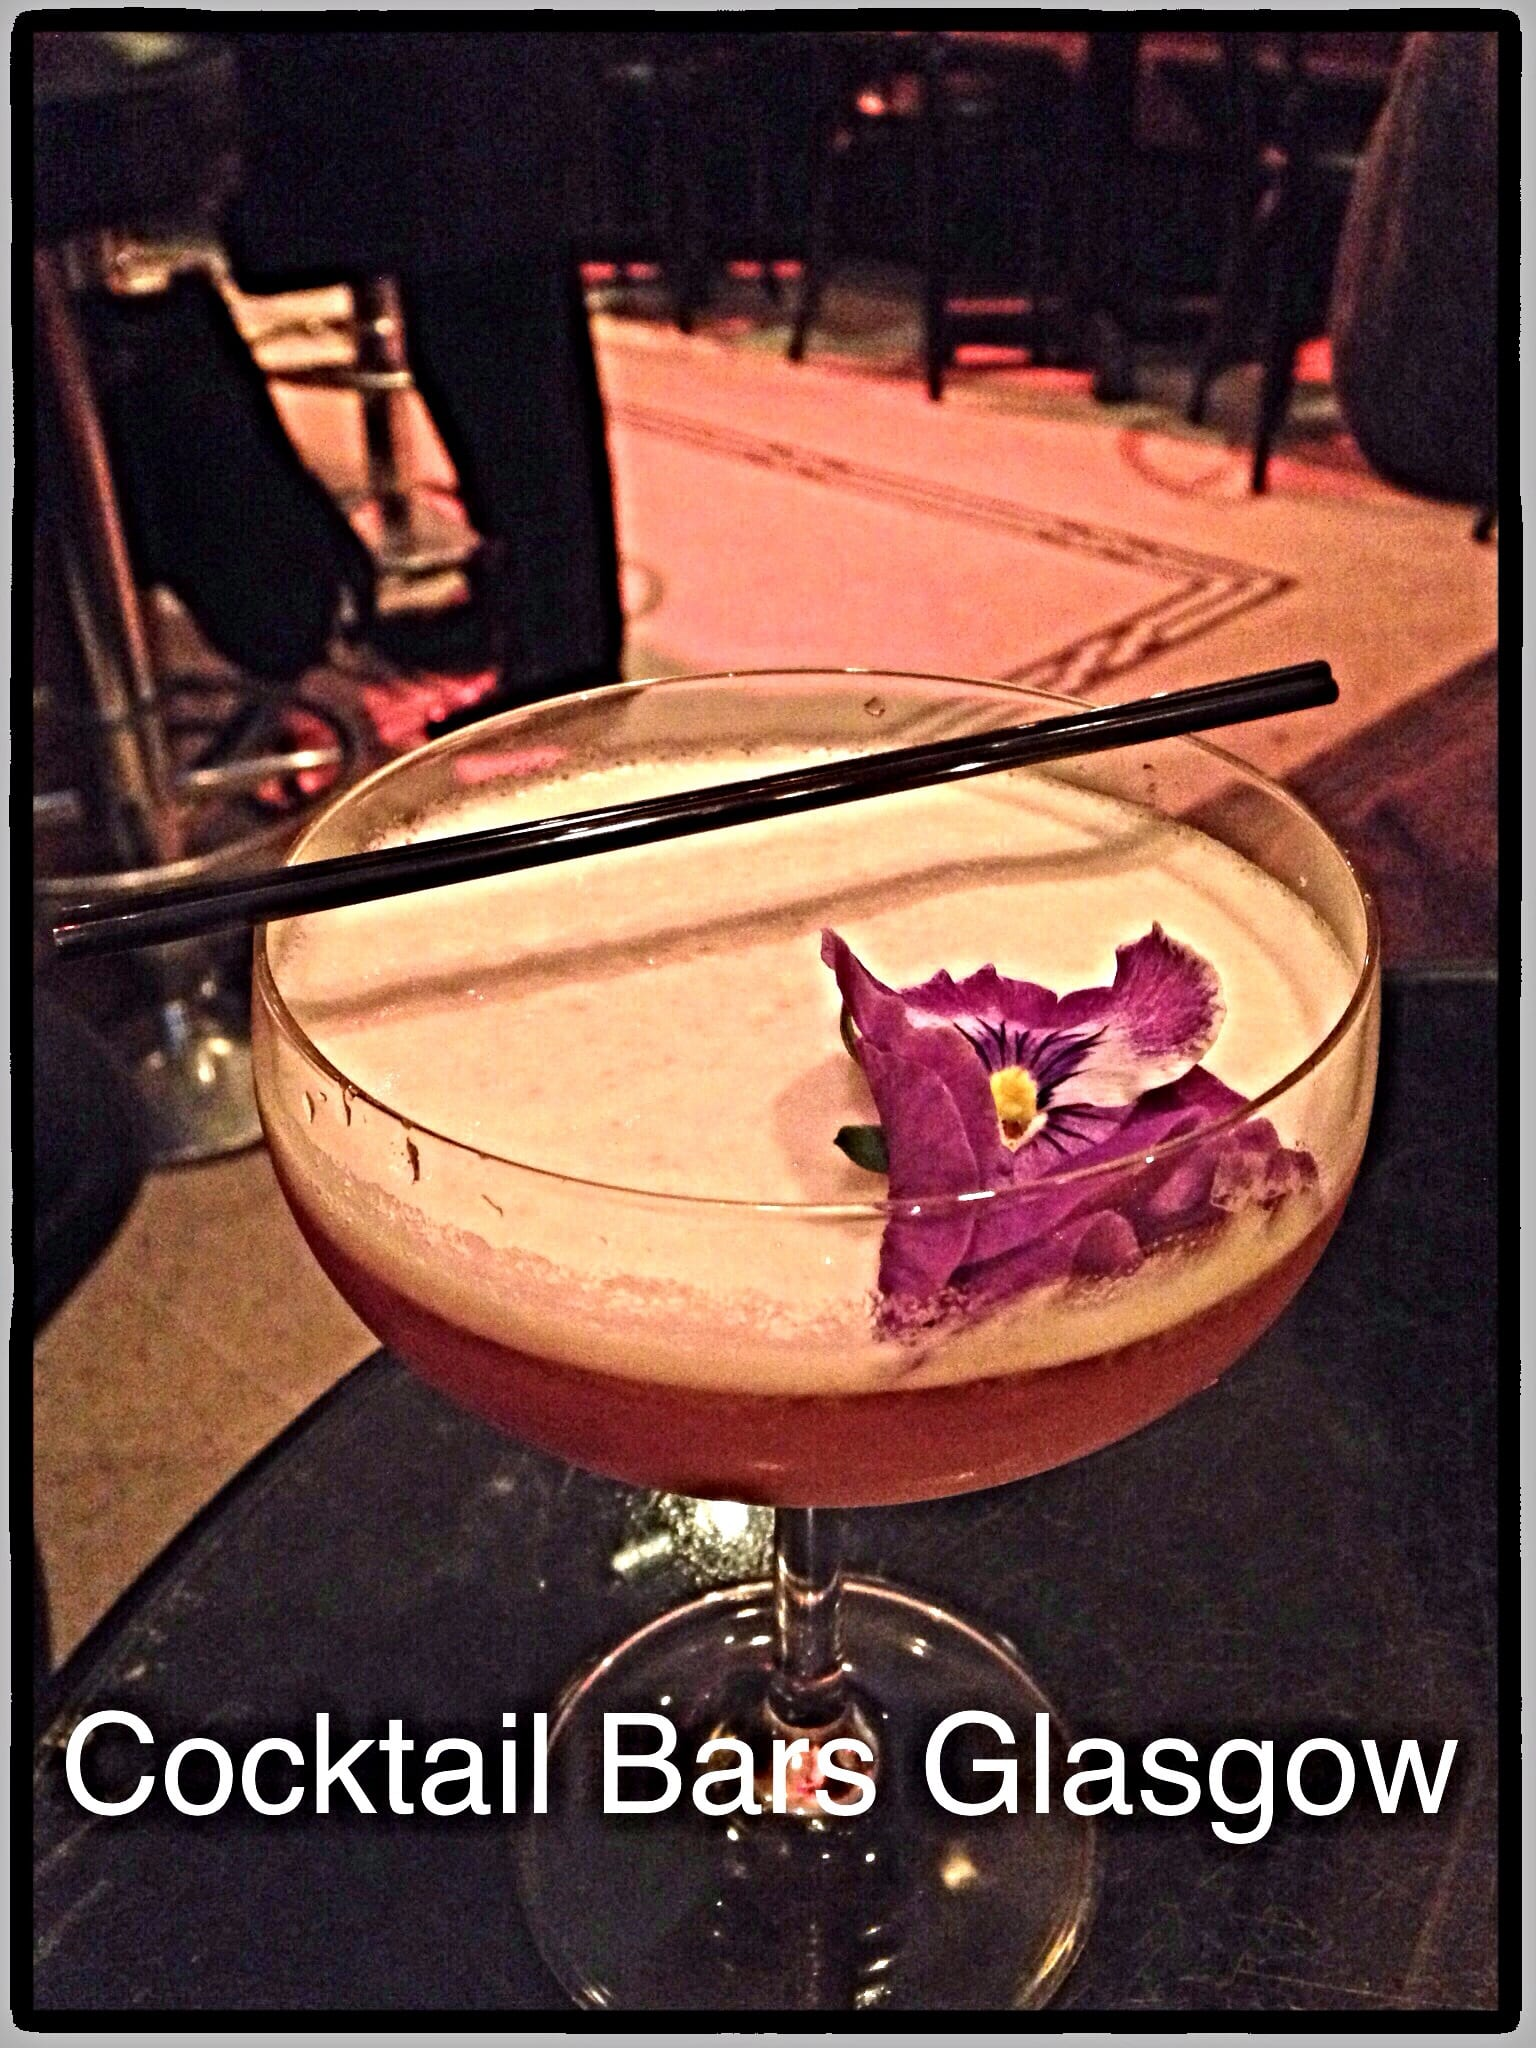 Cocktail bars Glasgow best where to go drinks